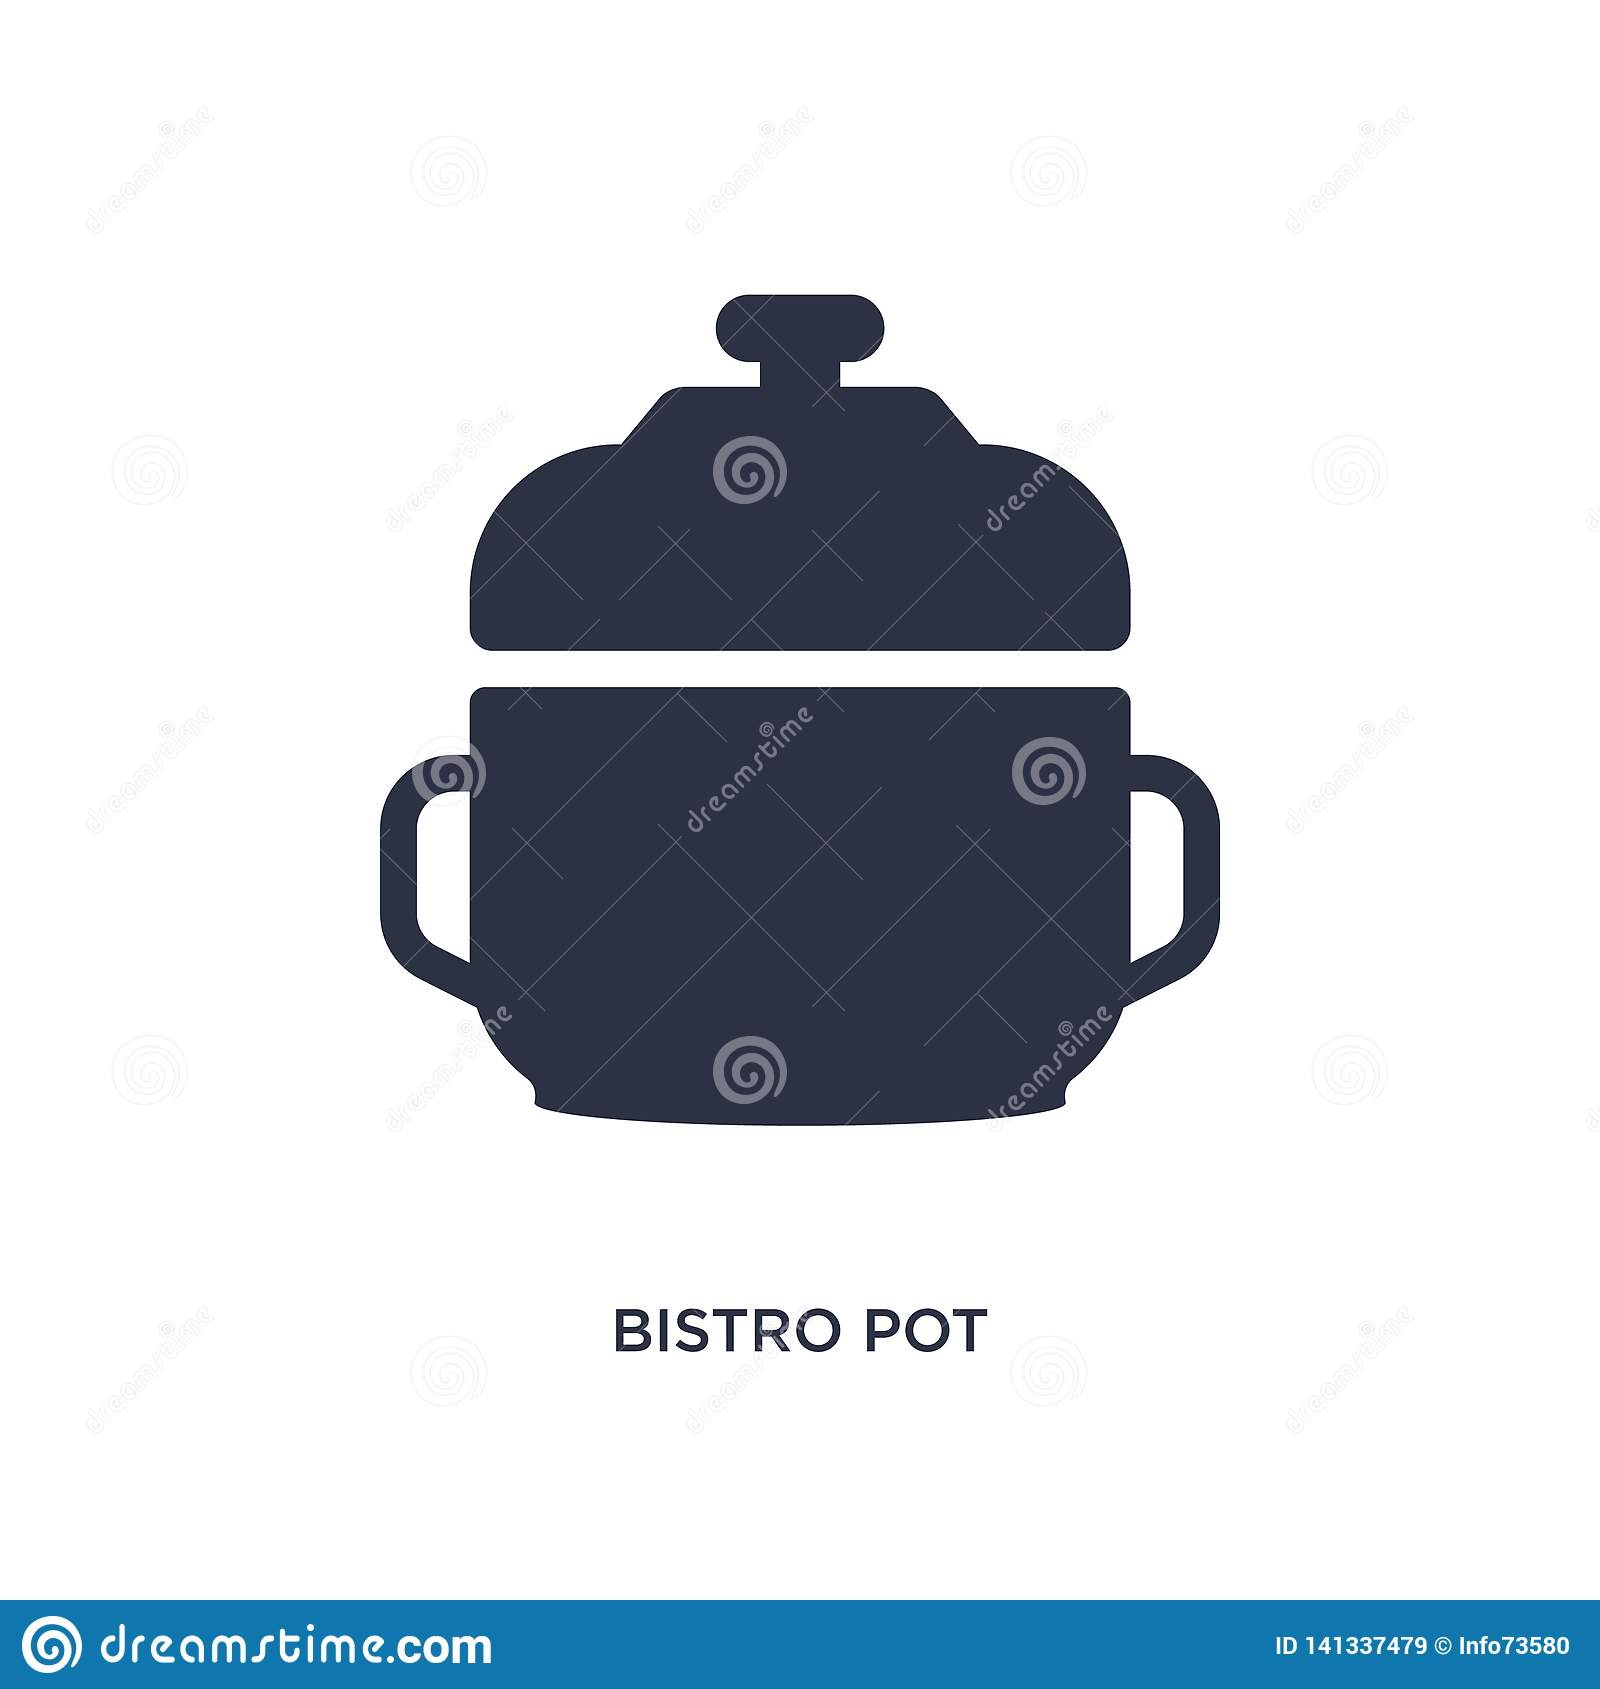 bistro pot icon on white background. Simple element illustration from bistro and restaurant concept